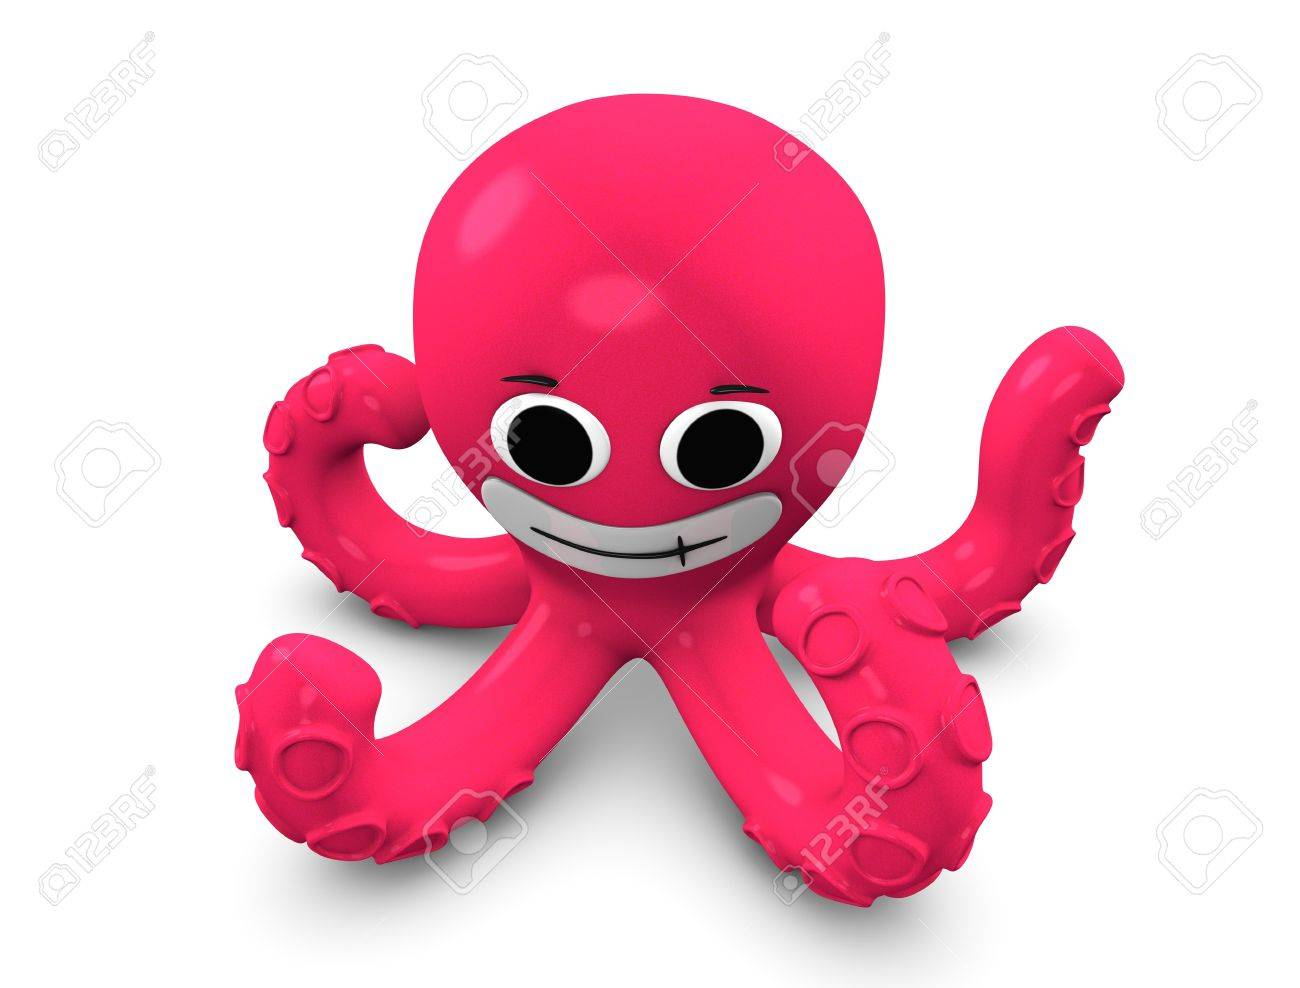 3d rendering, Cartoon concept illustration of octopus, isolated on white. Stock Illustration - 11453958